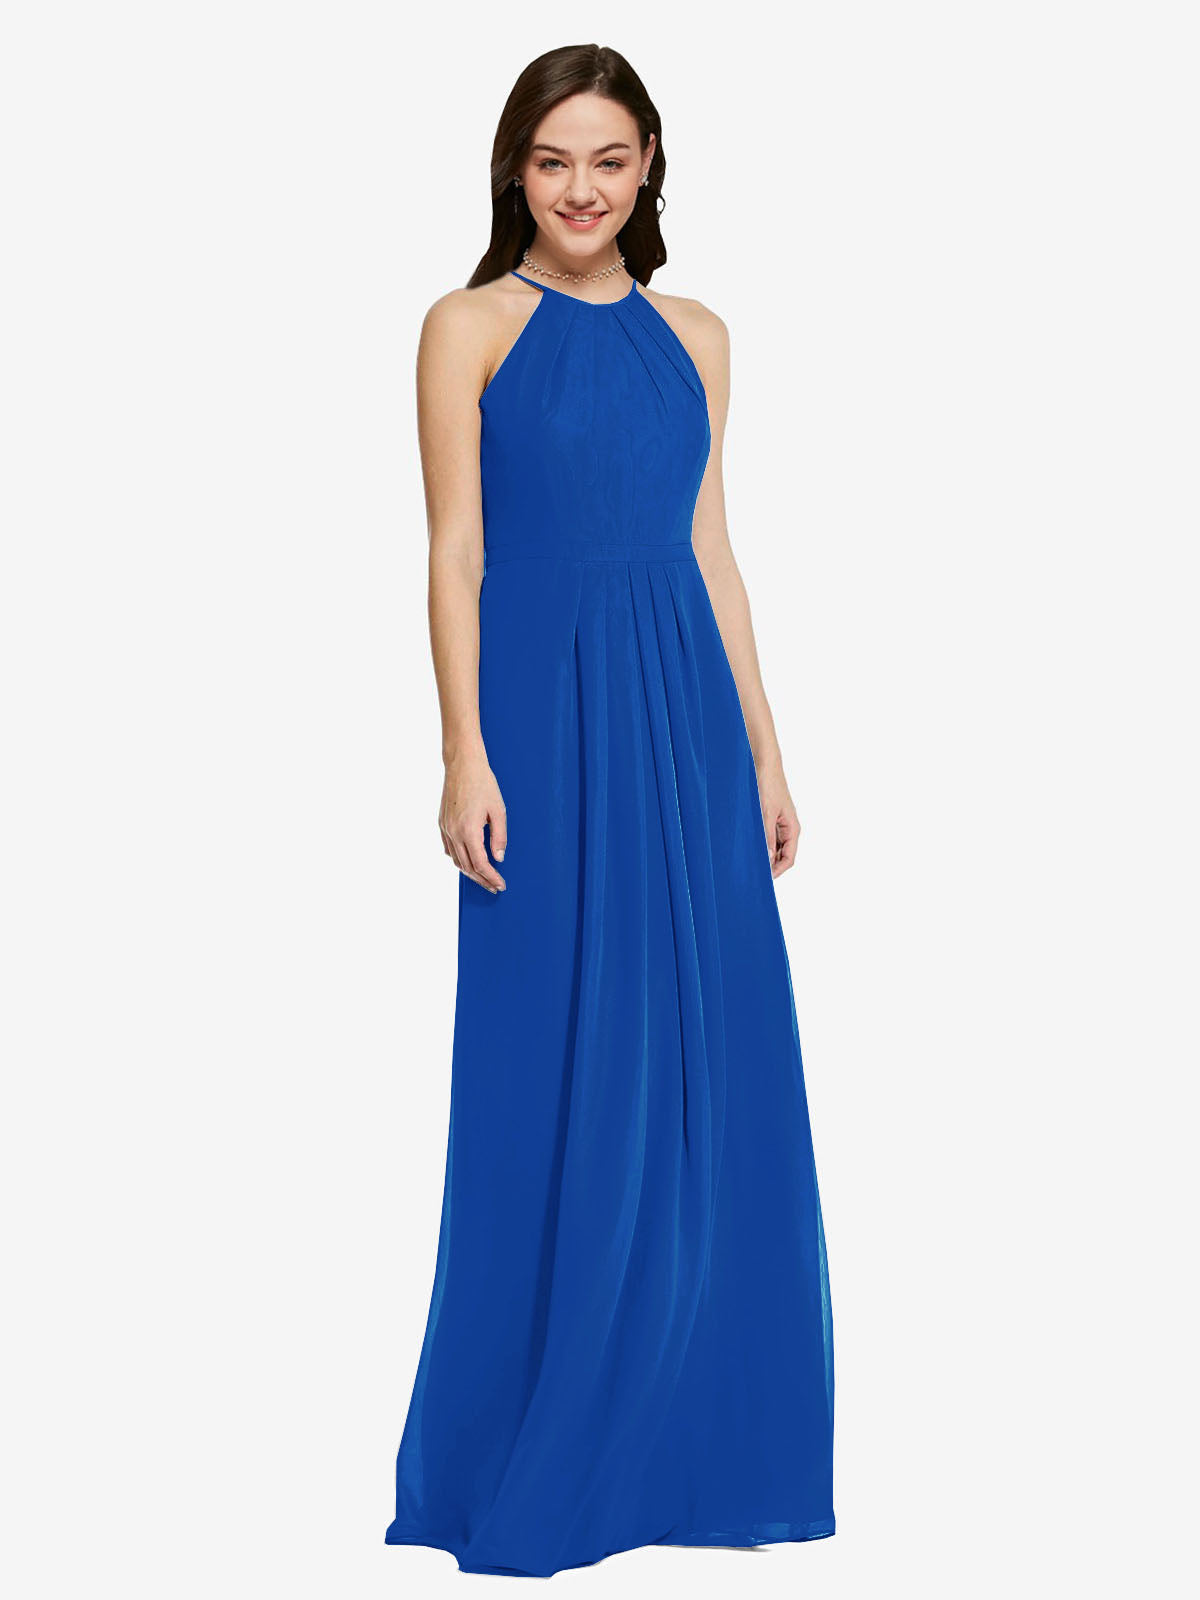 Long Sheath High Neck Halter Sleeveless Royal Blue Chiffon Bridesmaid Dress Koloti